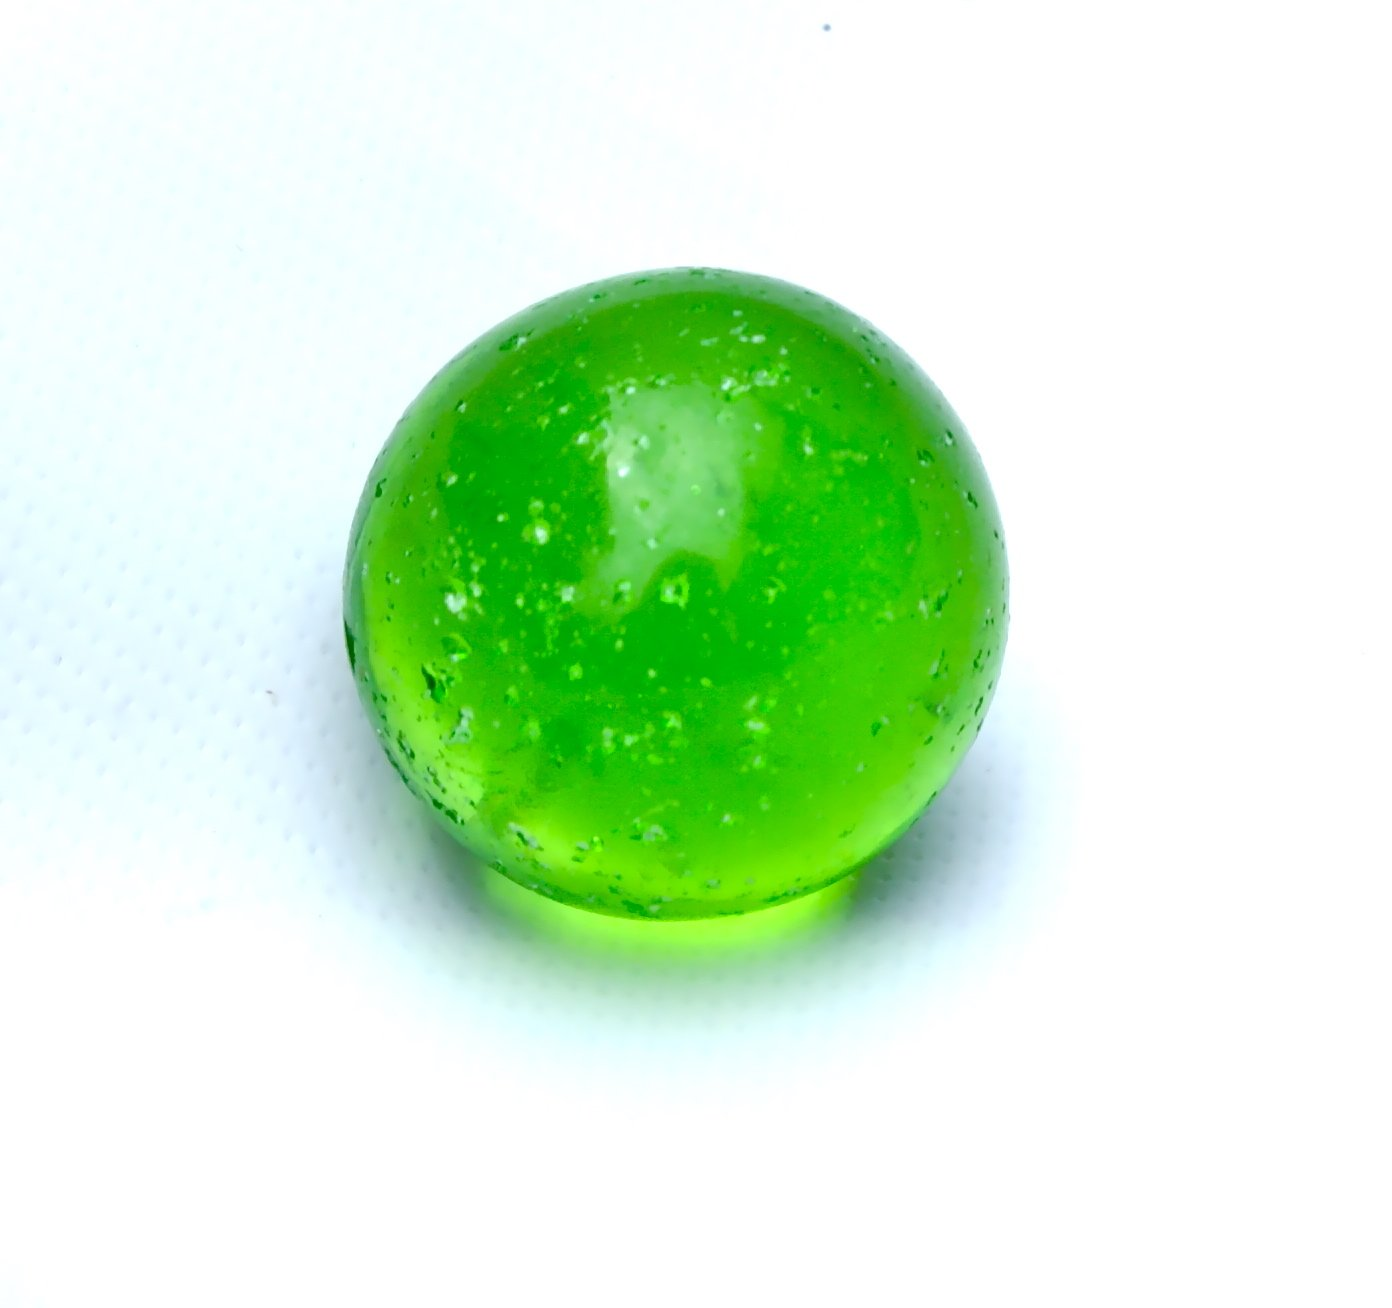 Vintage Akro Agate Lime Green Shooter Marble